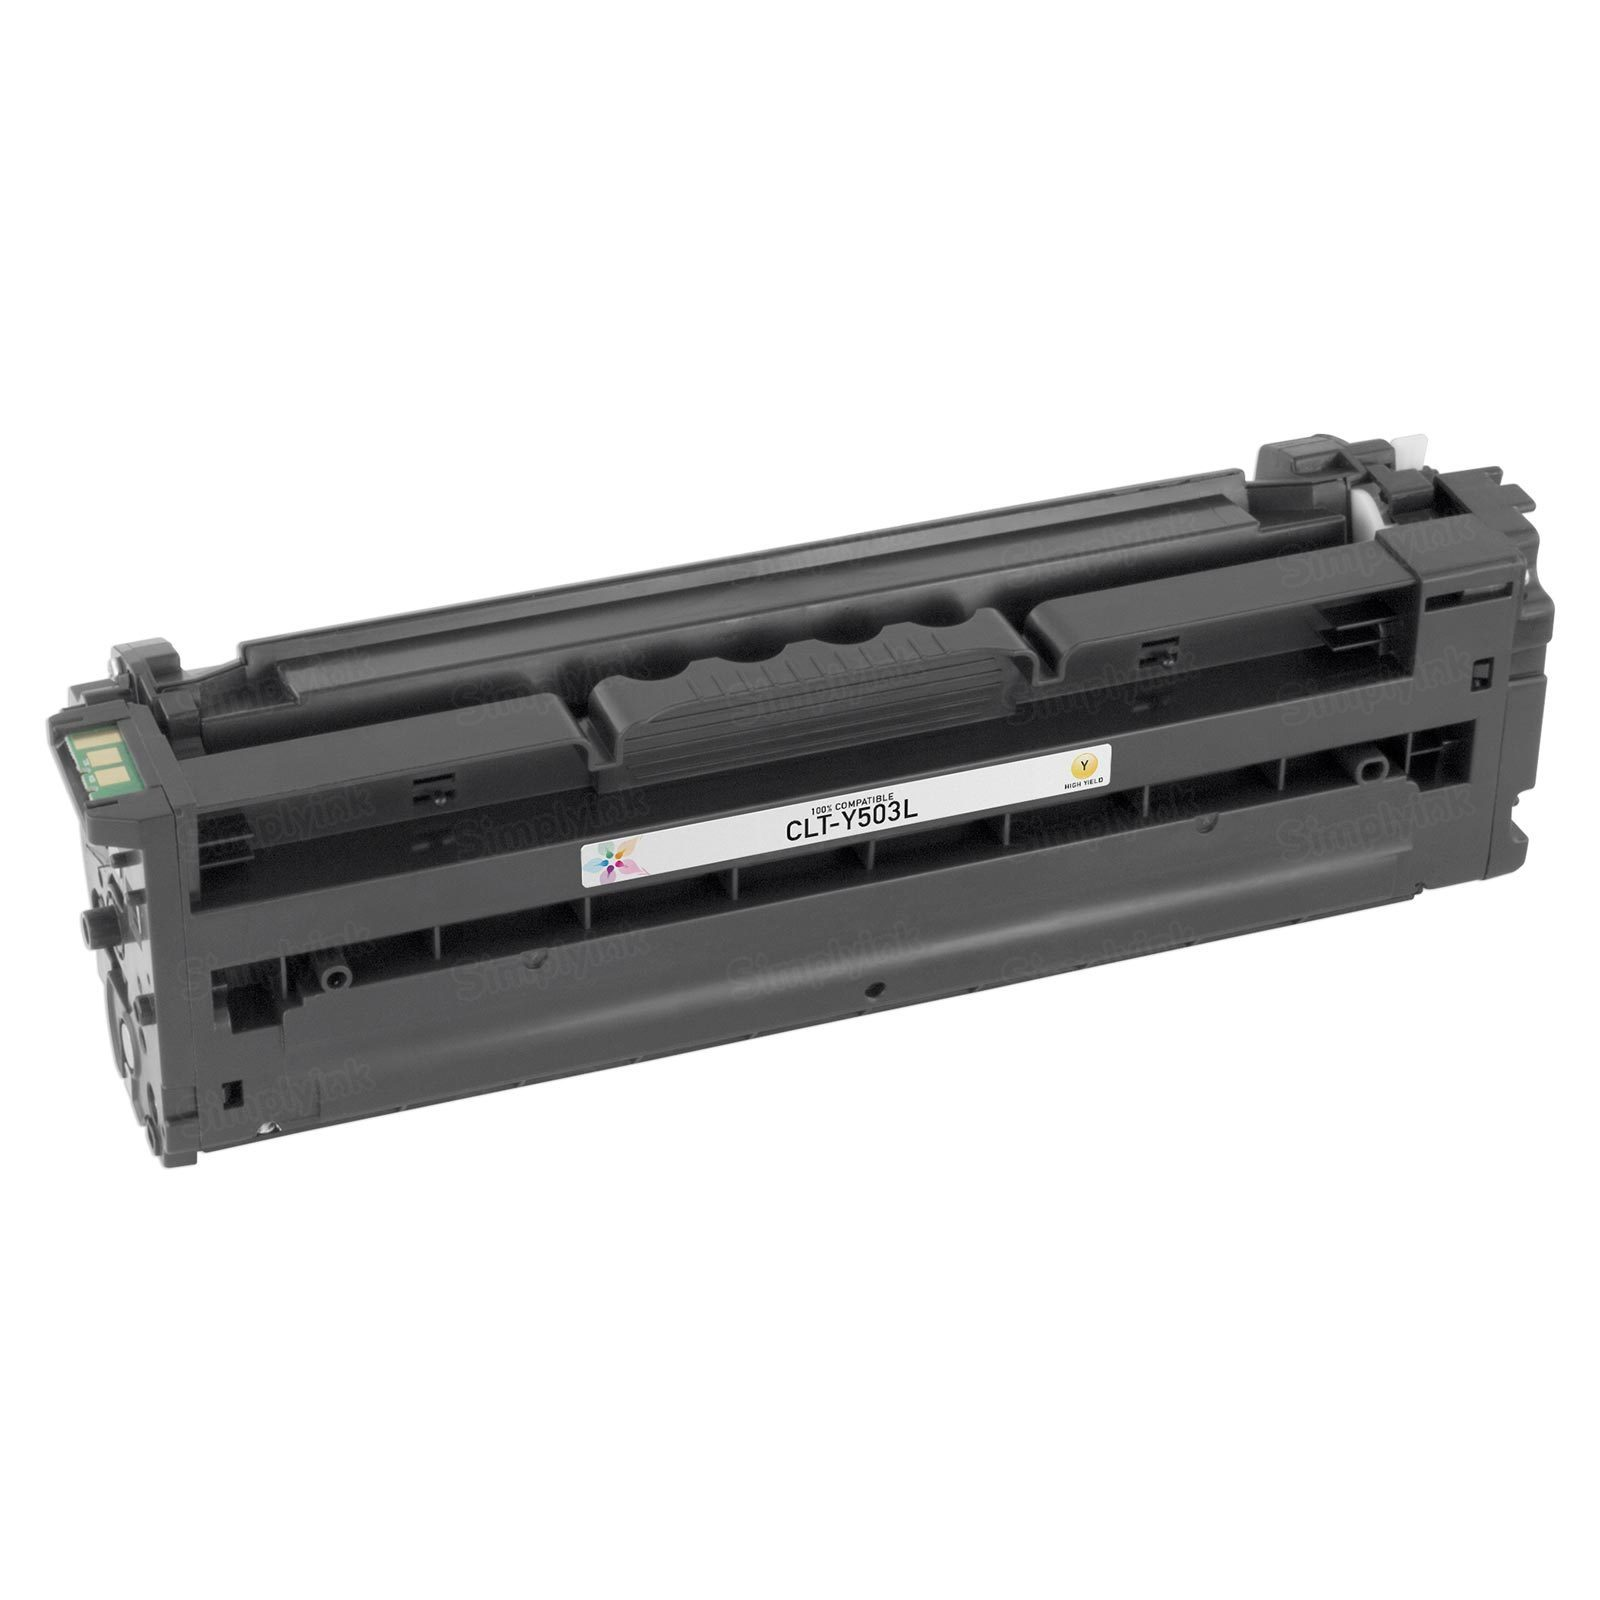 Compatible High Yield Yellow Toner for Samsung Y503L